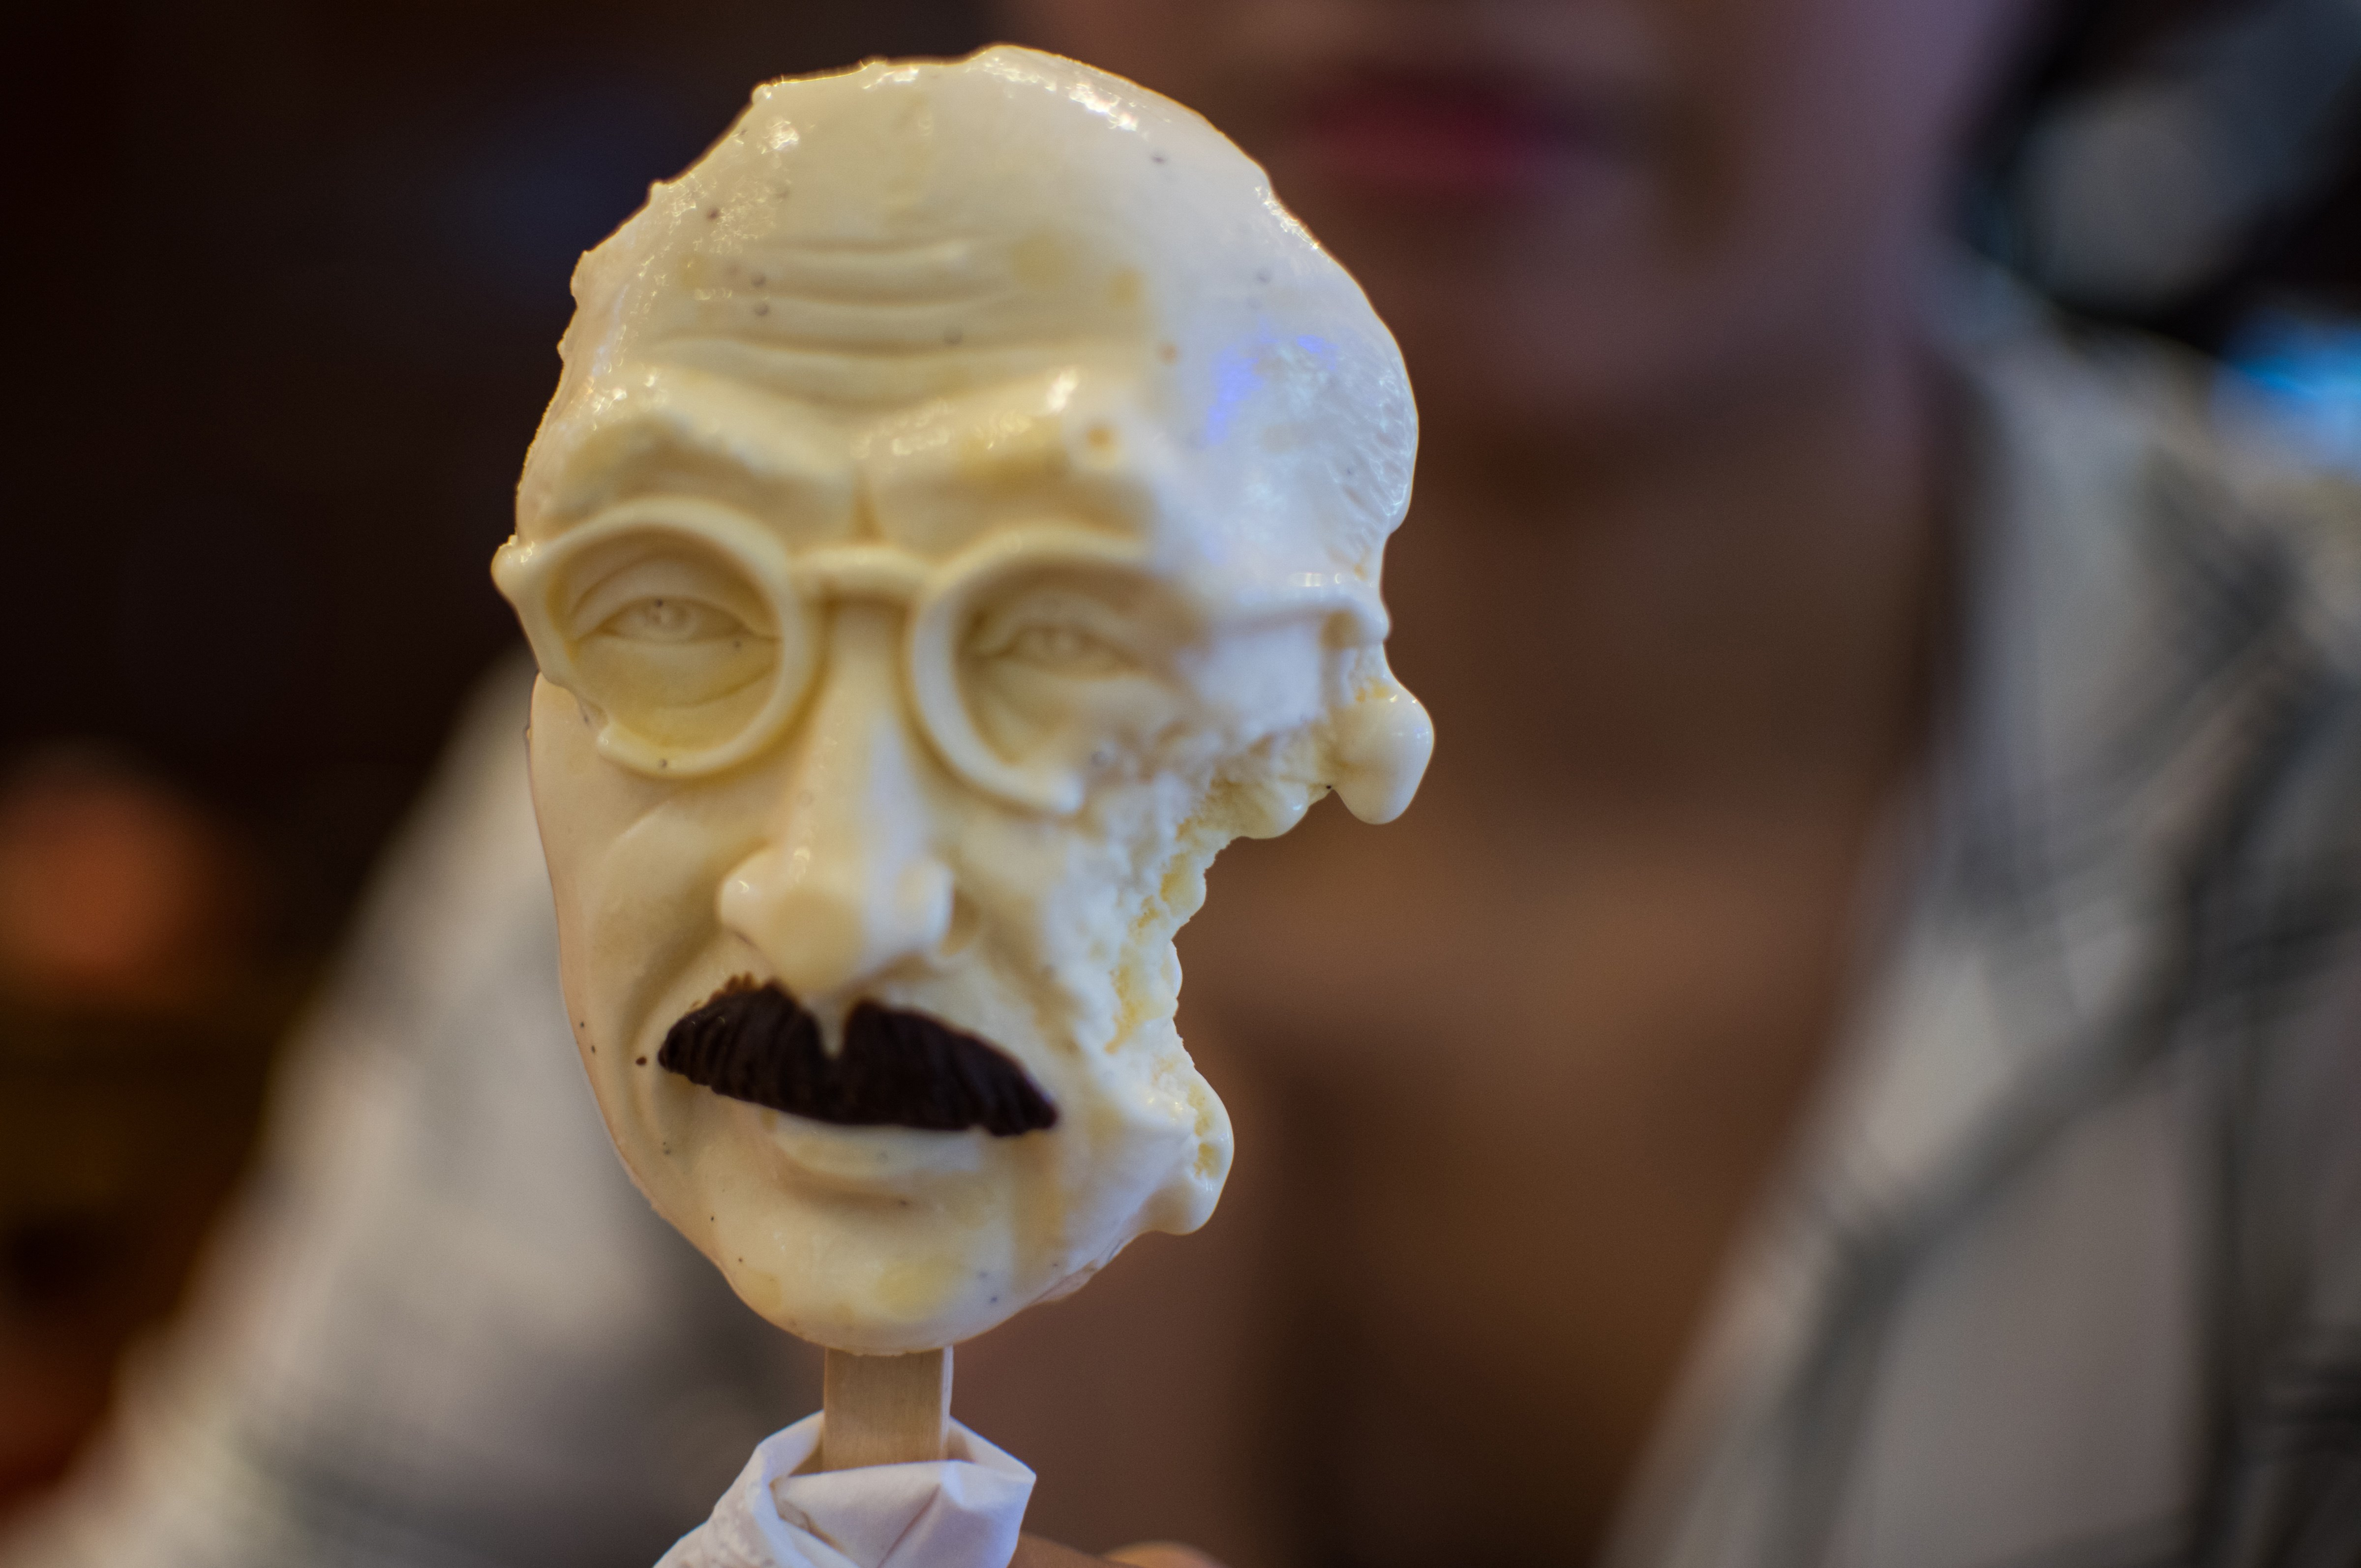 A woman sells an ice cream in the shape of executed Japanese war criminal Hideki Tojo at an ice cream store in Shanghai on Sept. 2, 2015